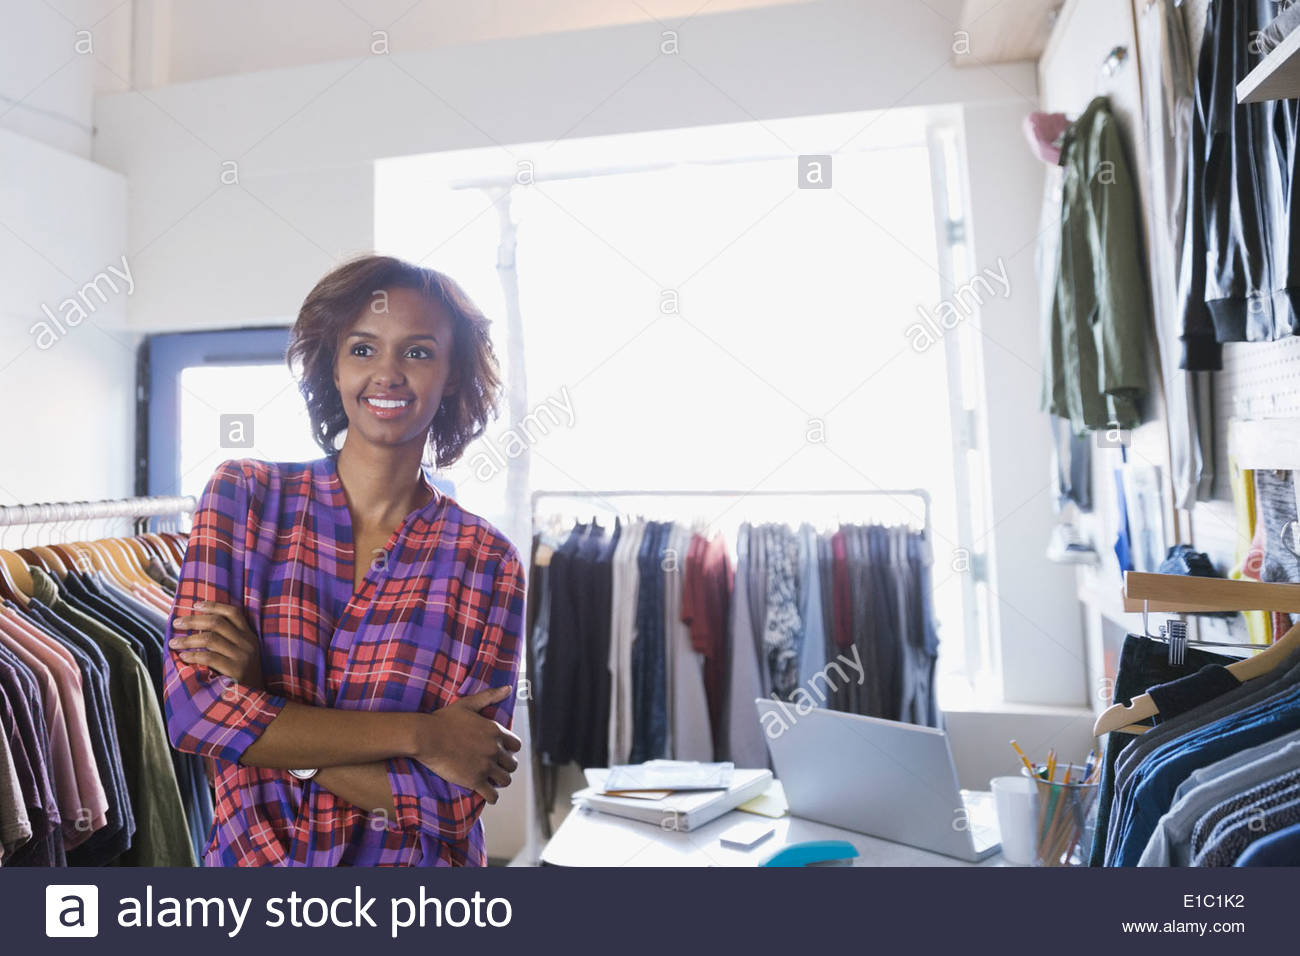 Confident business owner in clothing shop - Stock Image